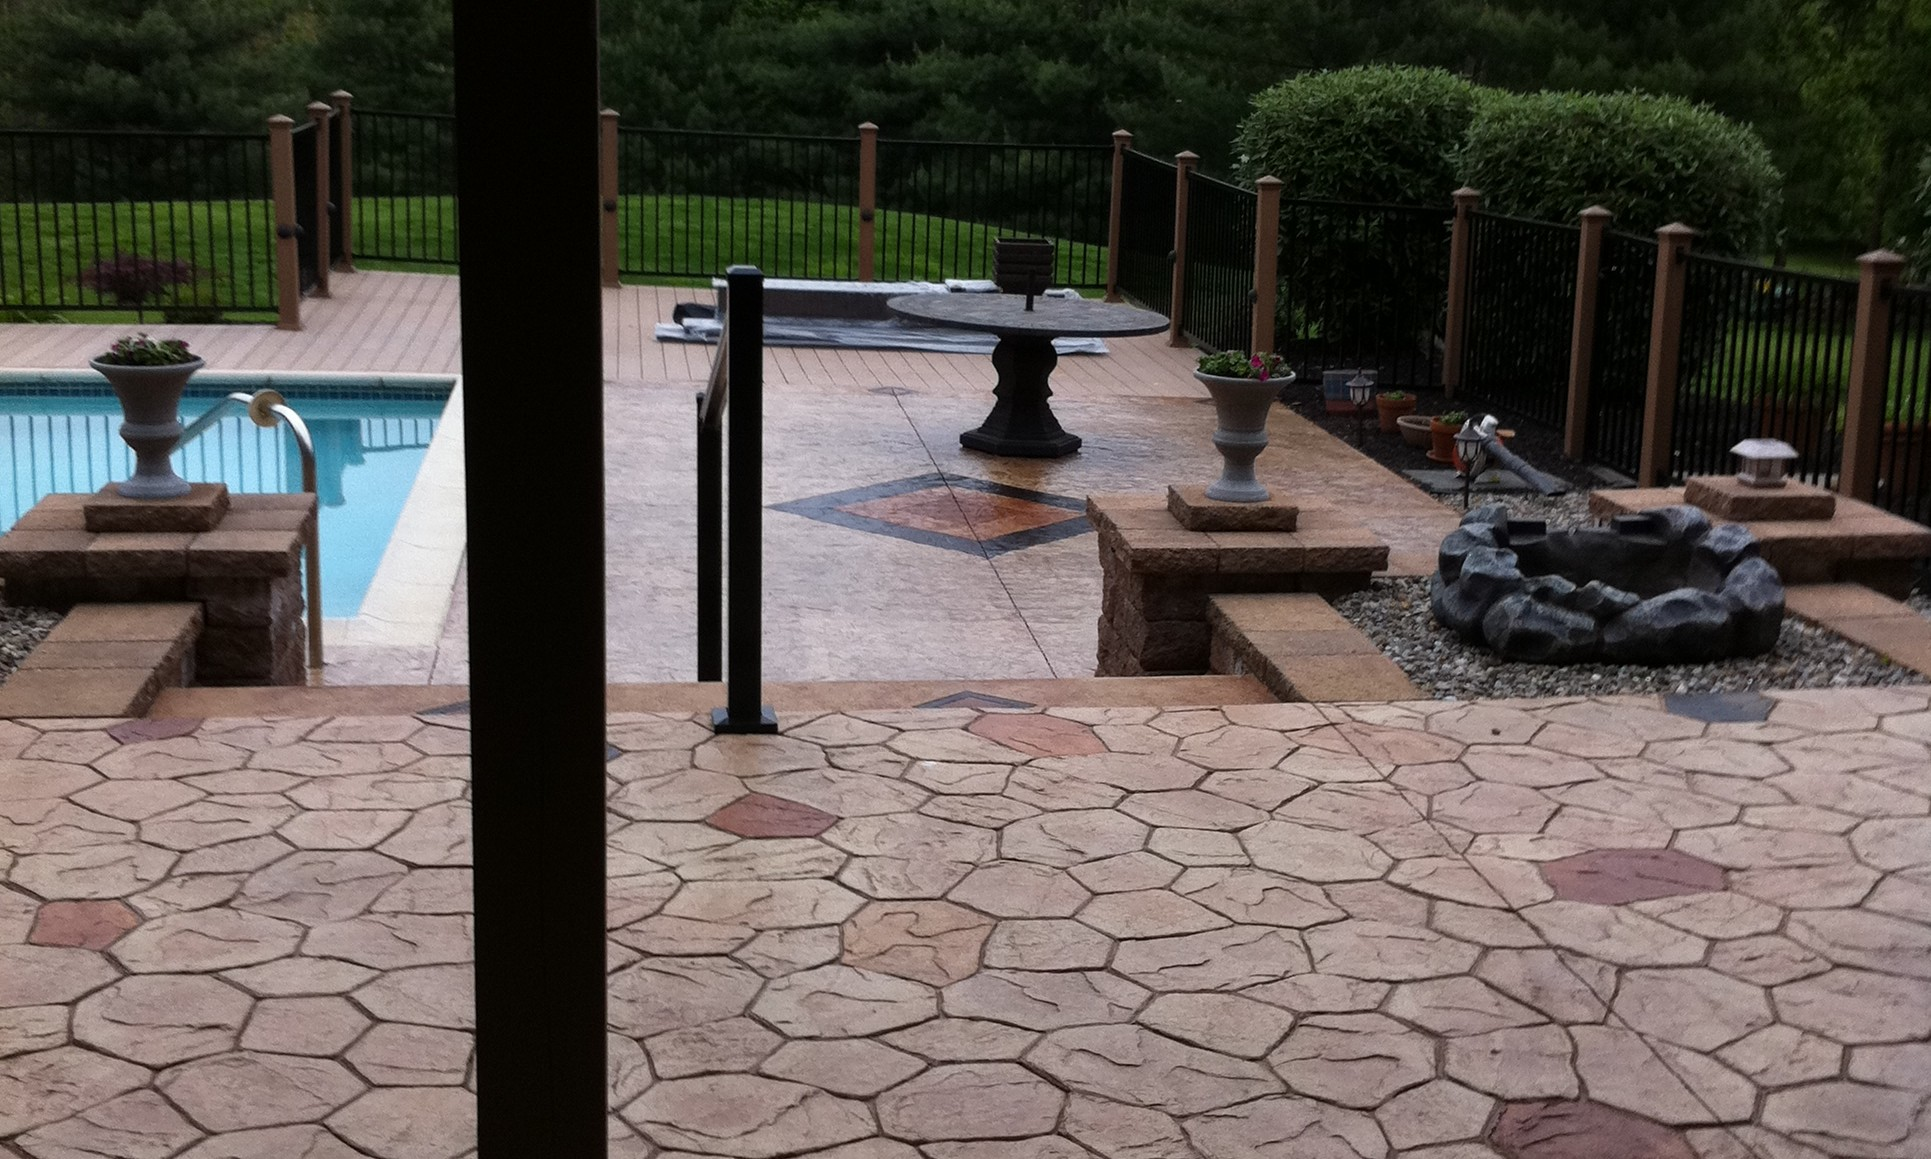 Cozy Look Stamped Concrete Patio Design For Pool Decks and Patio Space